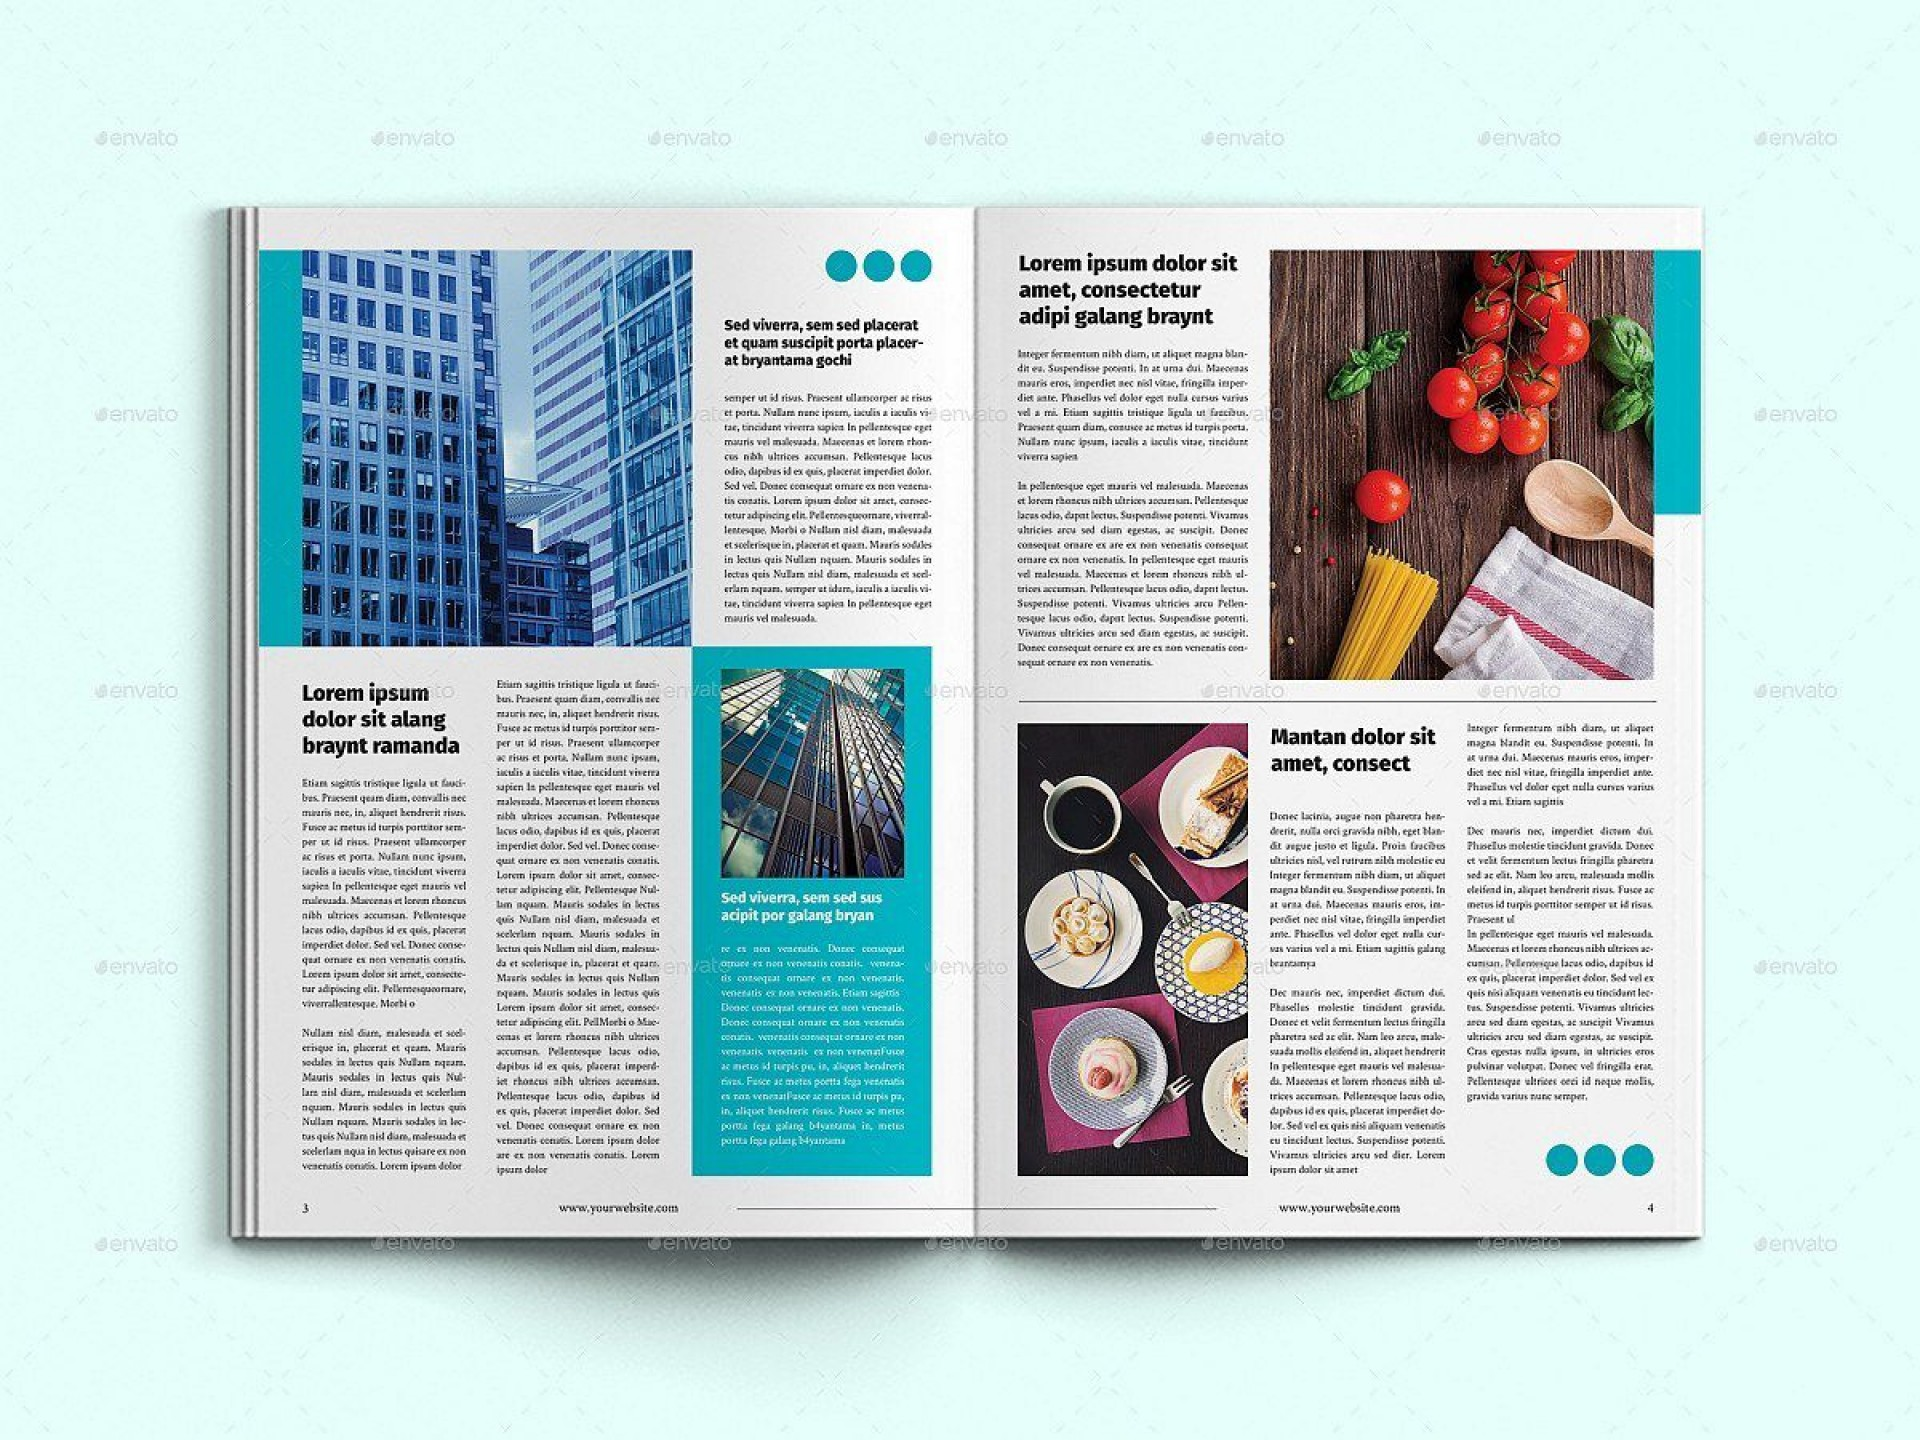 009 Staggering Adobe Indesign Newsletter Template Free Download Photo 1920